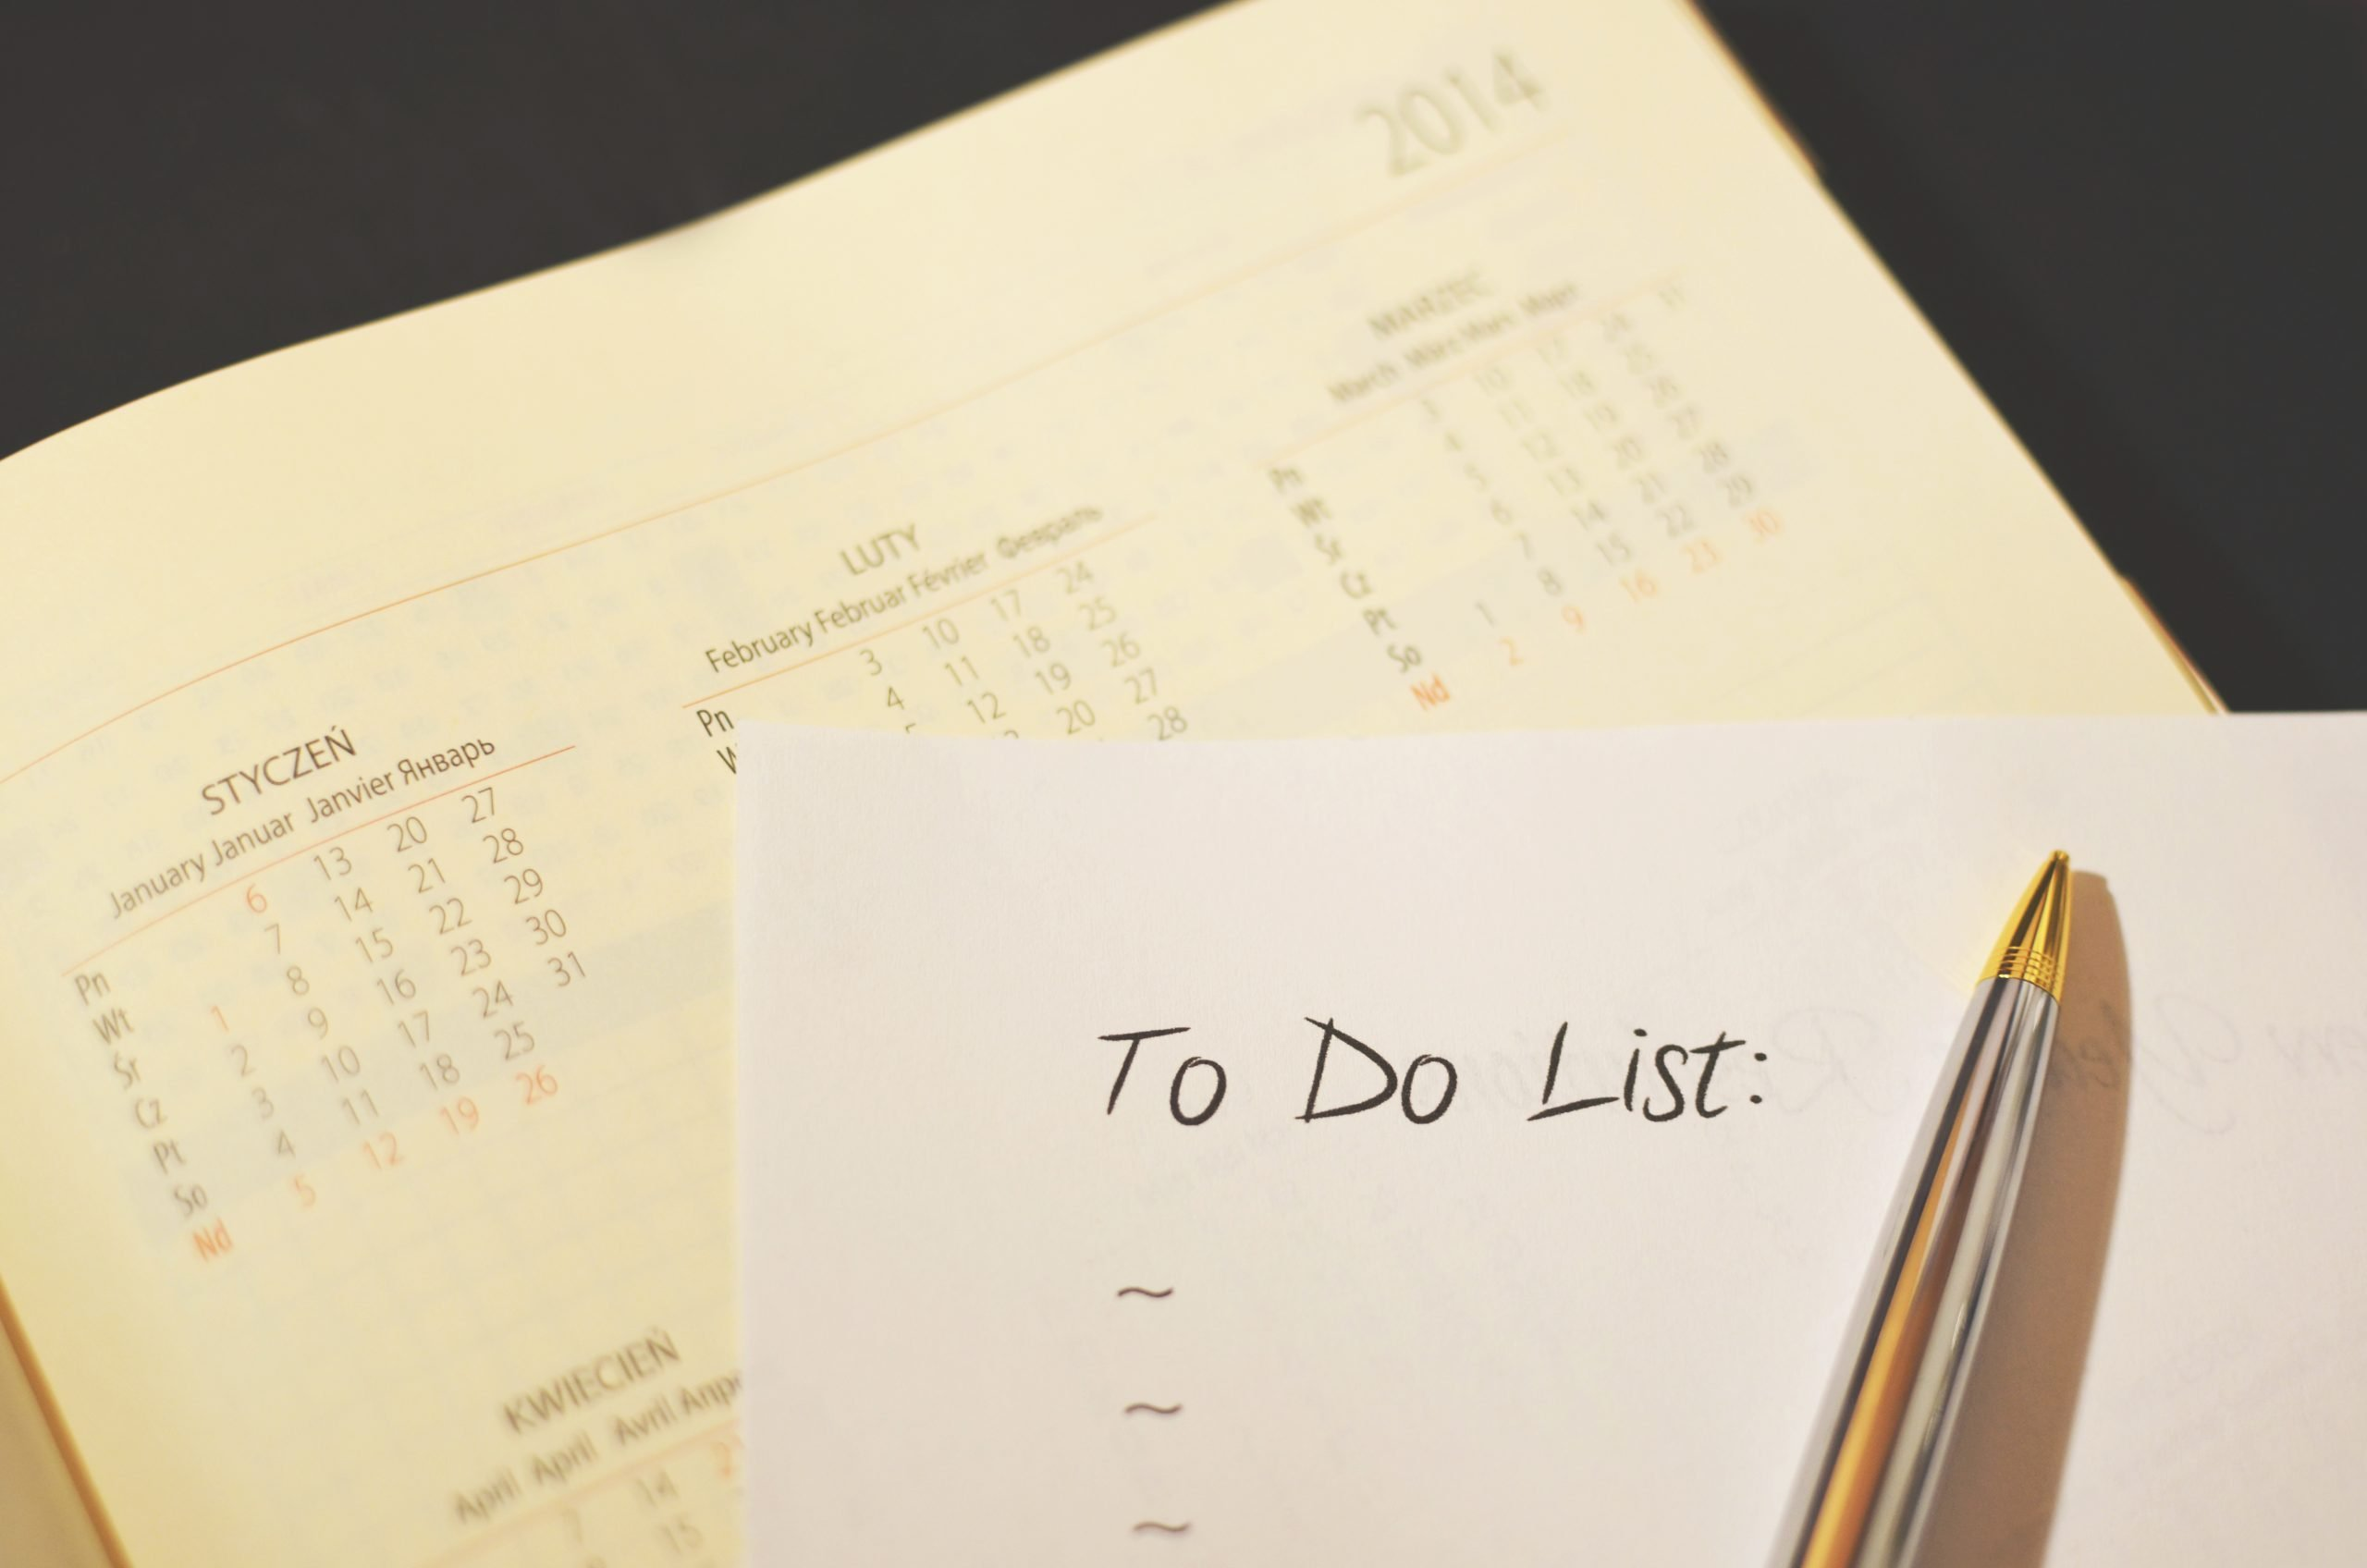 Image of a calendar, pencil and to-do list for IPEDS planning